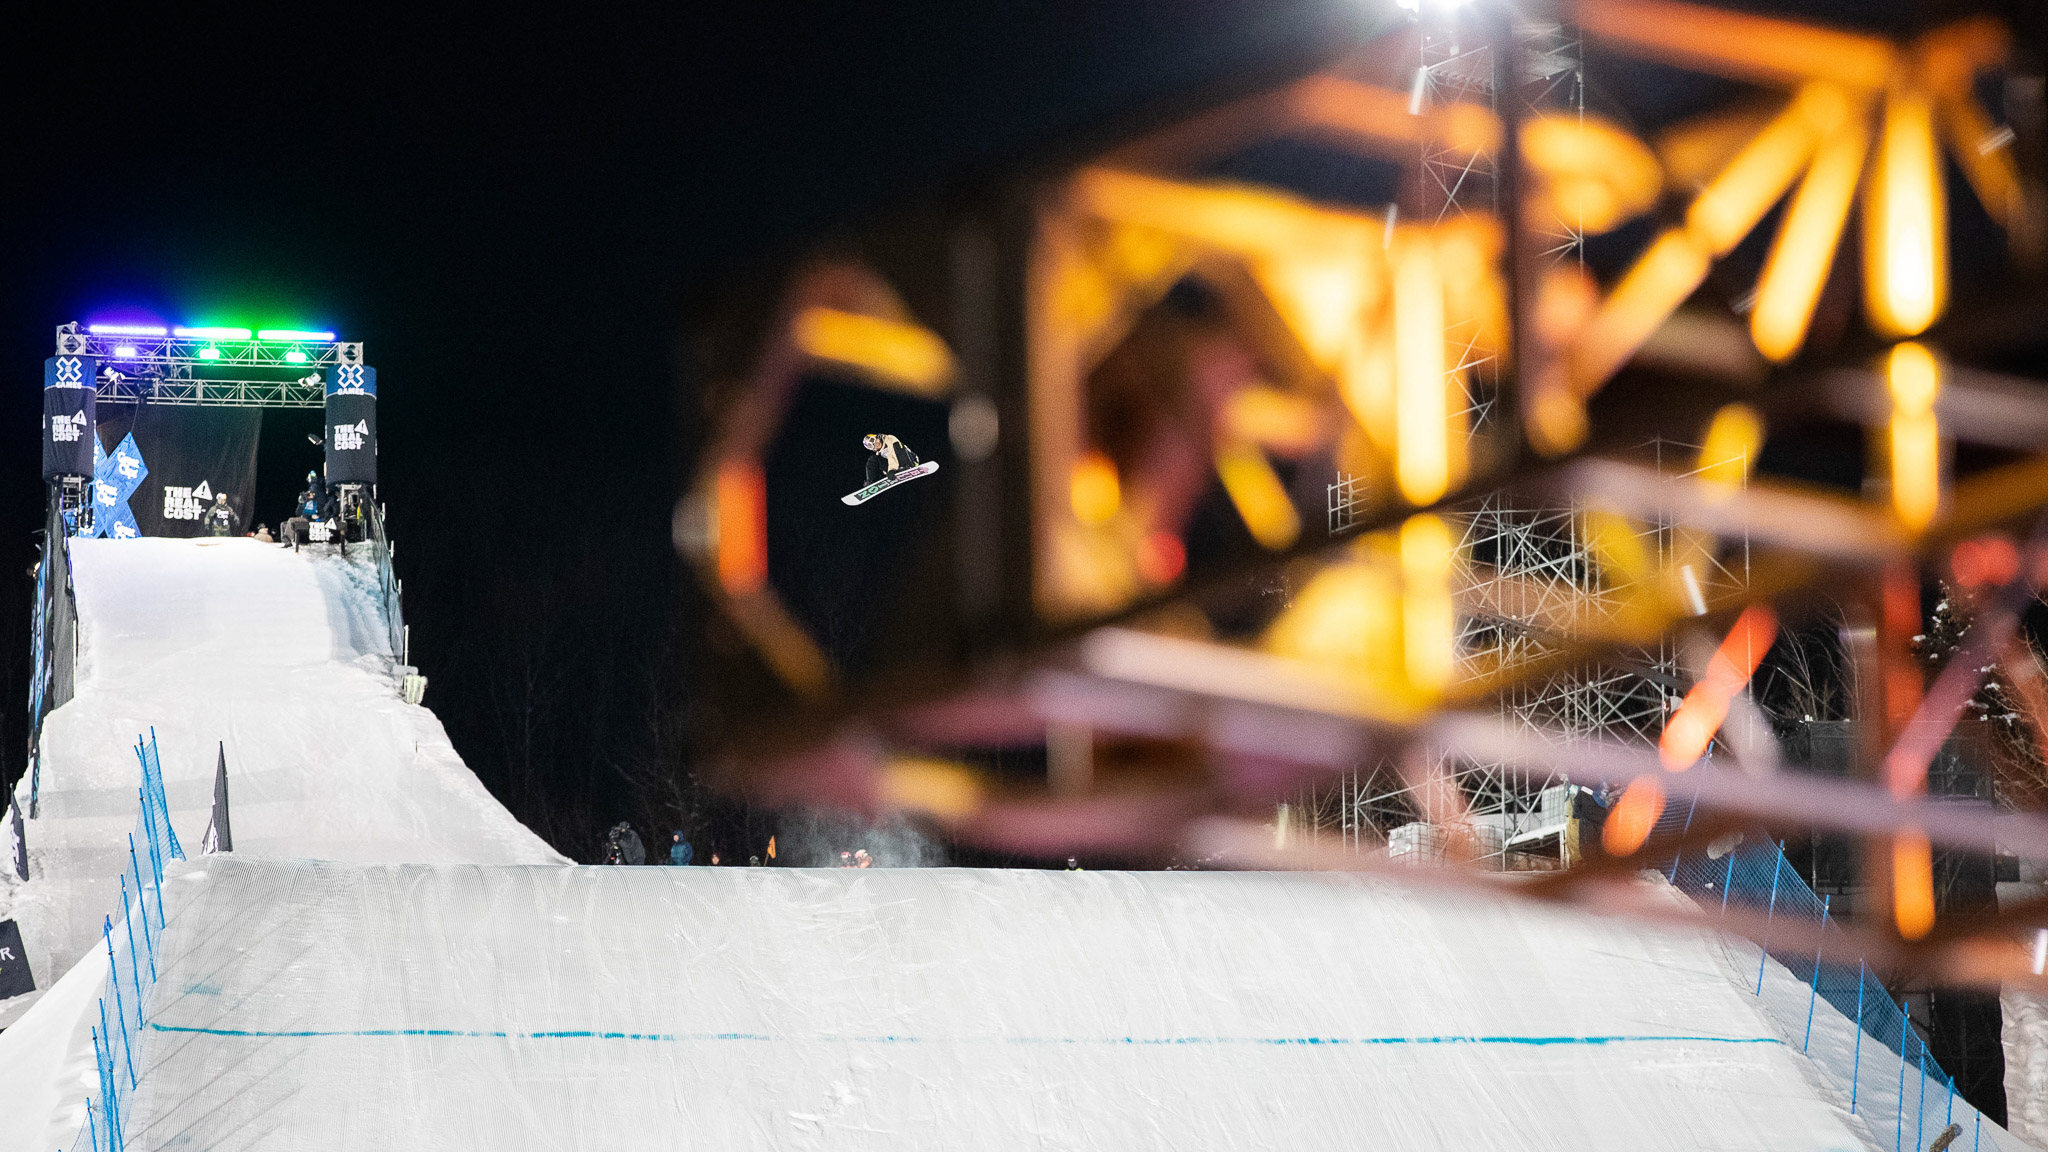 Day 2 at X Games Aspen 2019